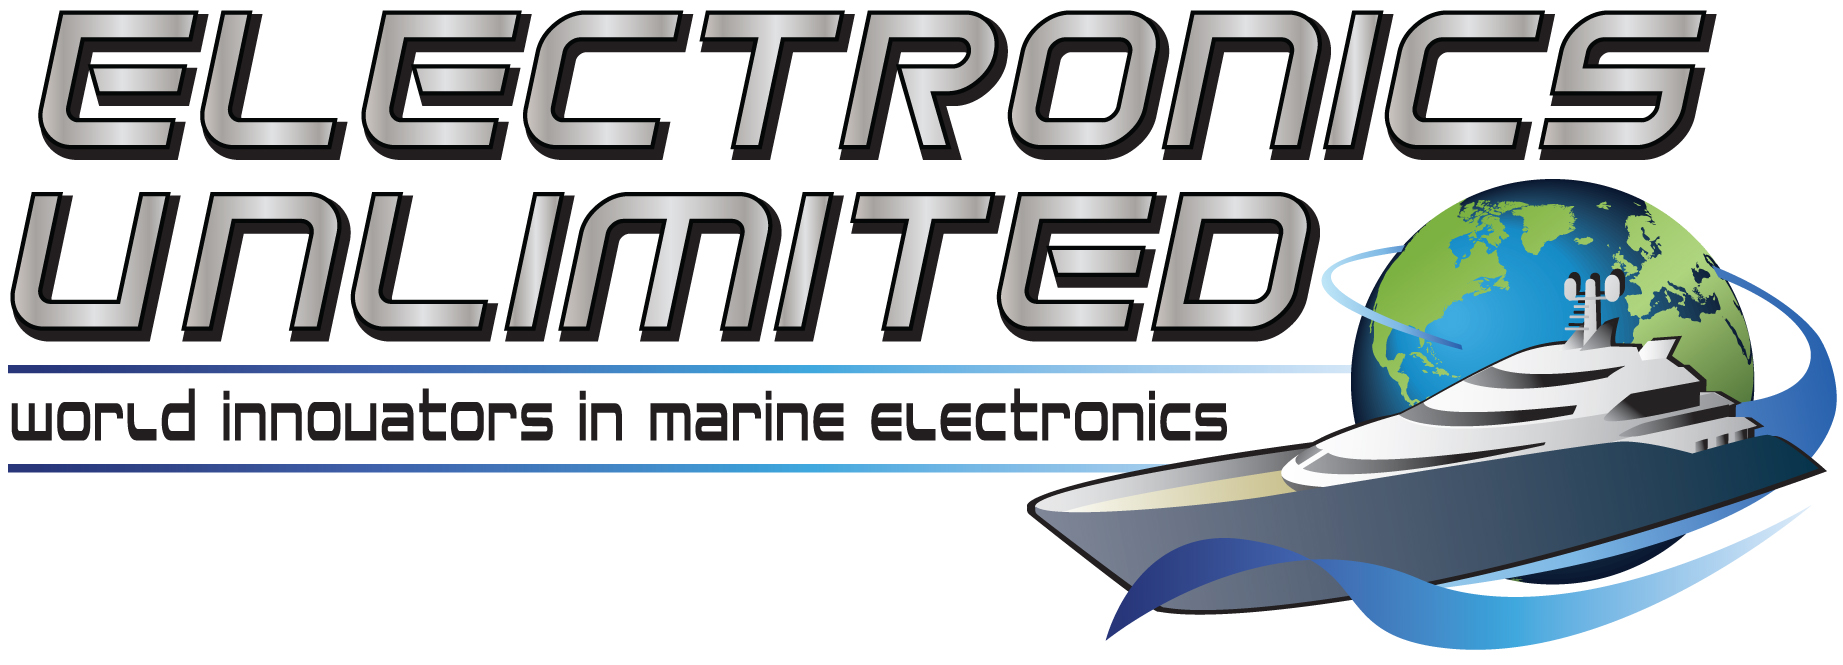 Electronics Unlimited Logos Final v2.jpg